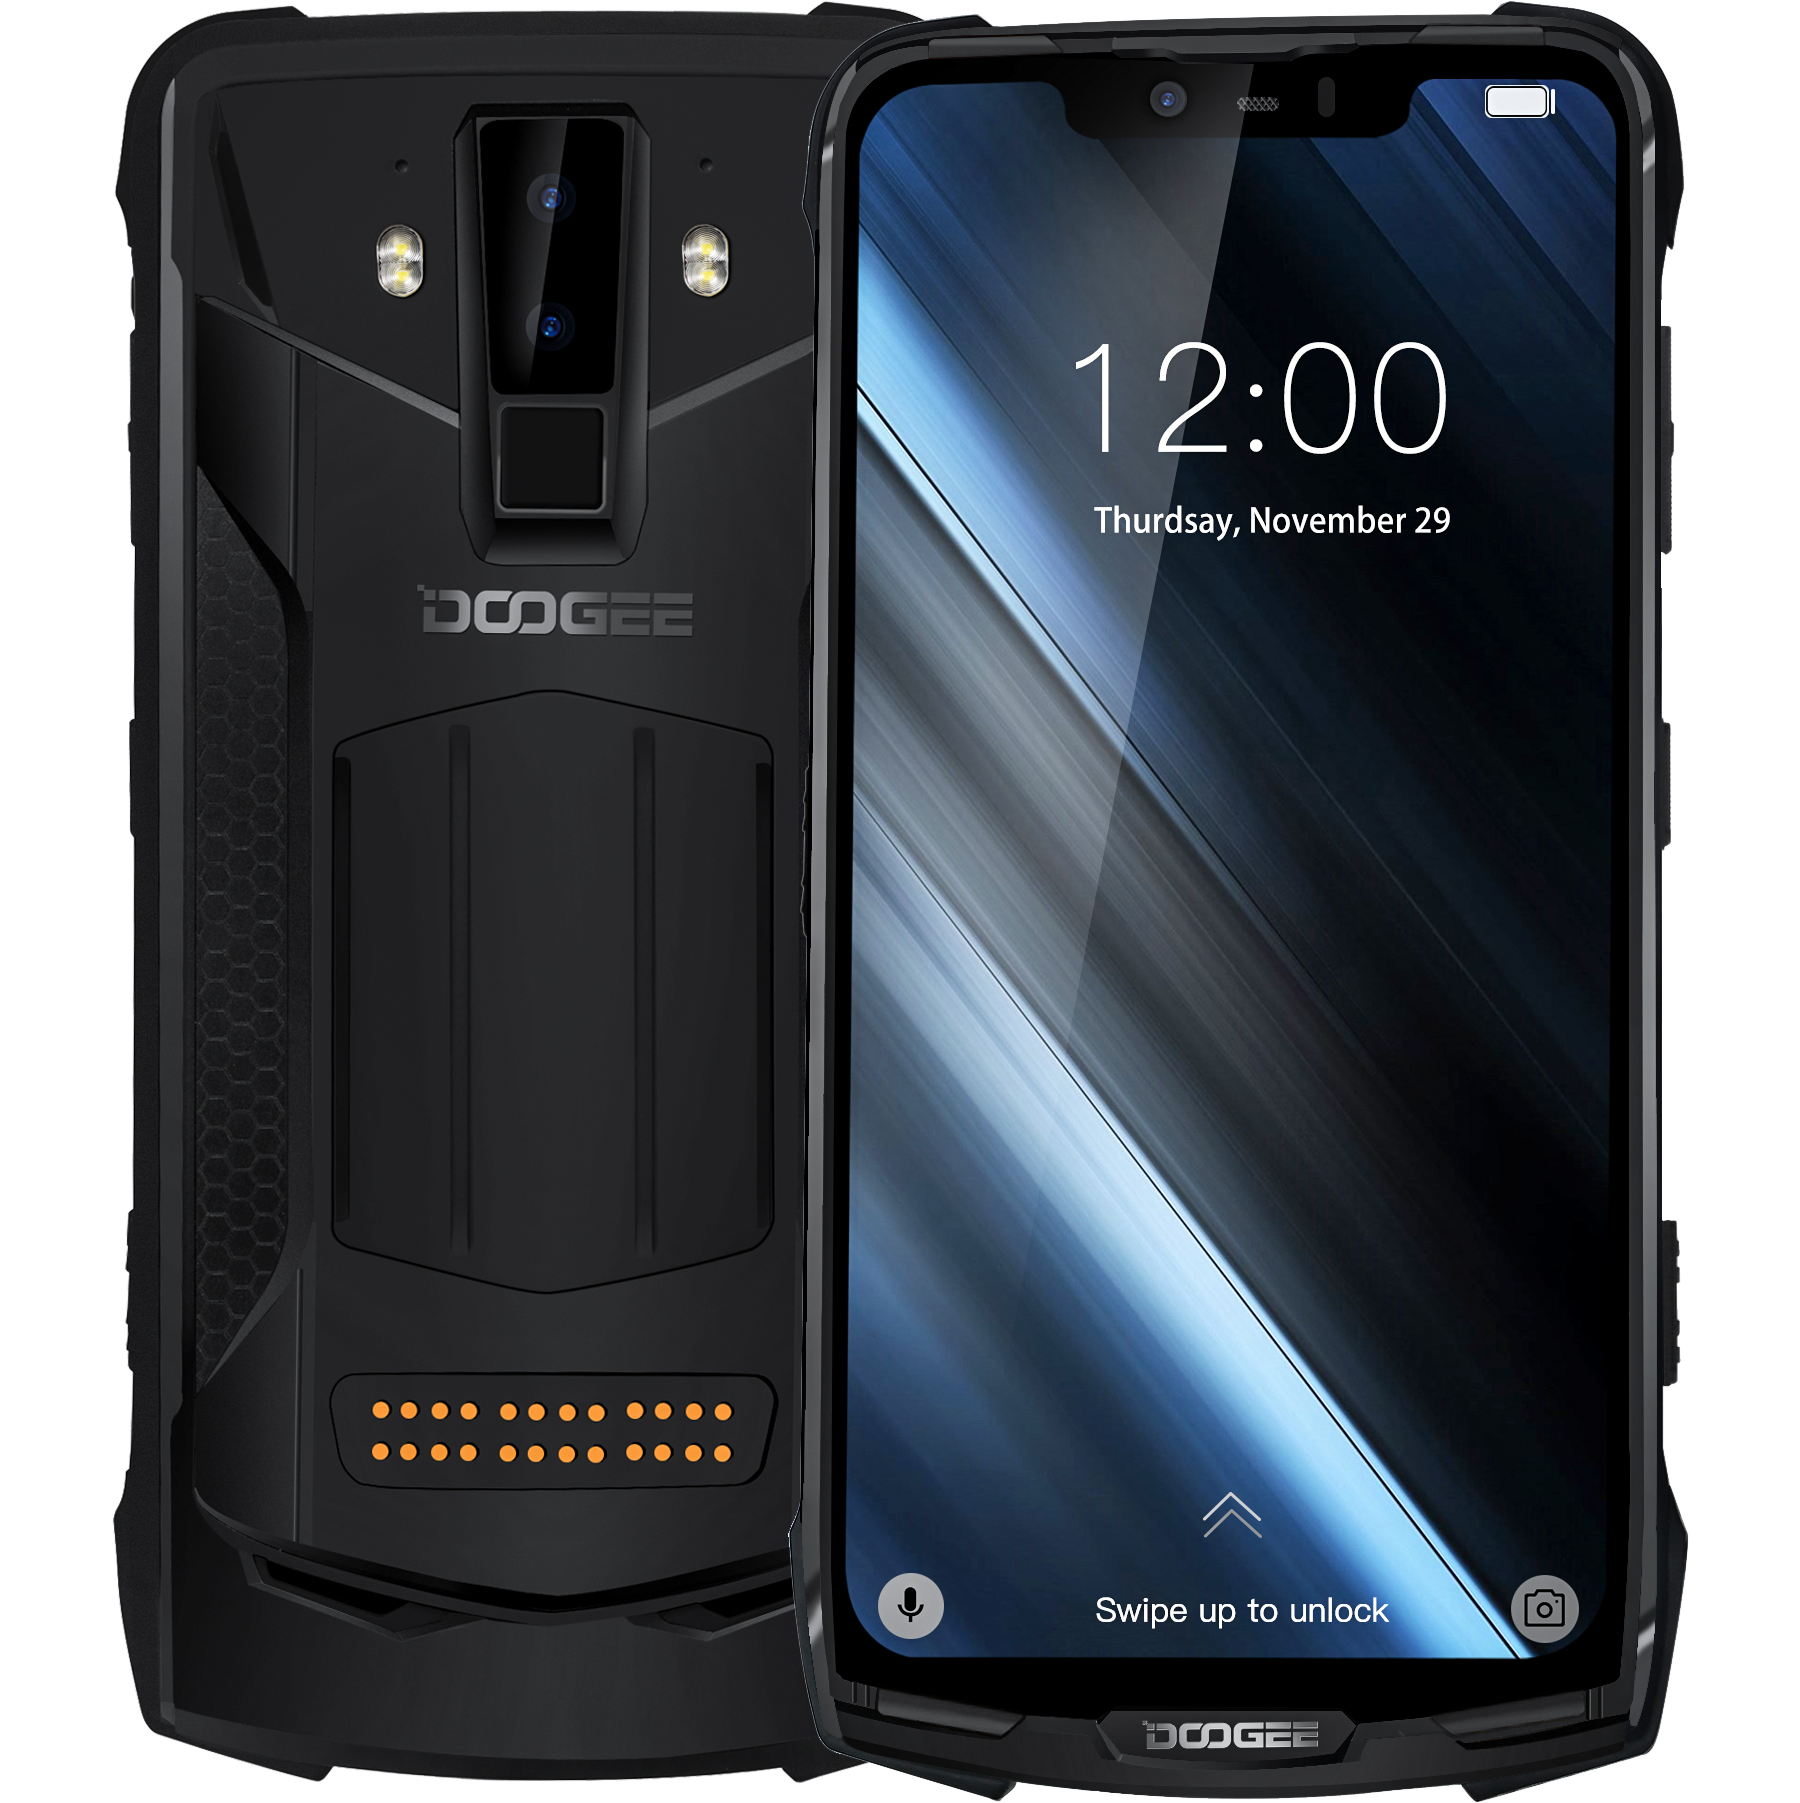 New DOOGEE S90C Modular Smartphone Helio P70 Octa core NFC 6.18 FHD+ Display IP68/IP69K 4GB 64GB 16MP Camera 4G Mobile Phone